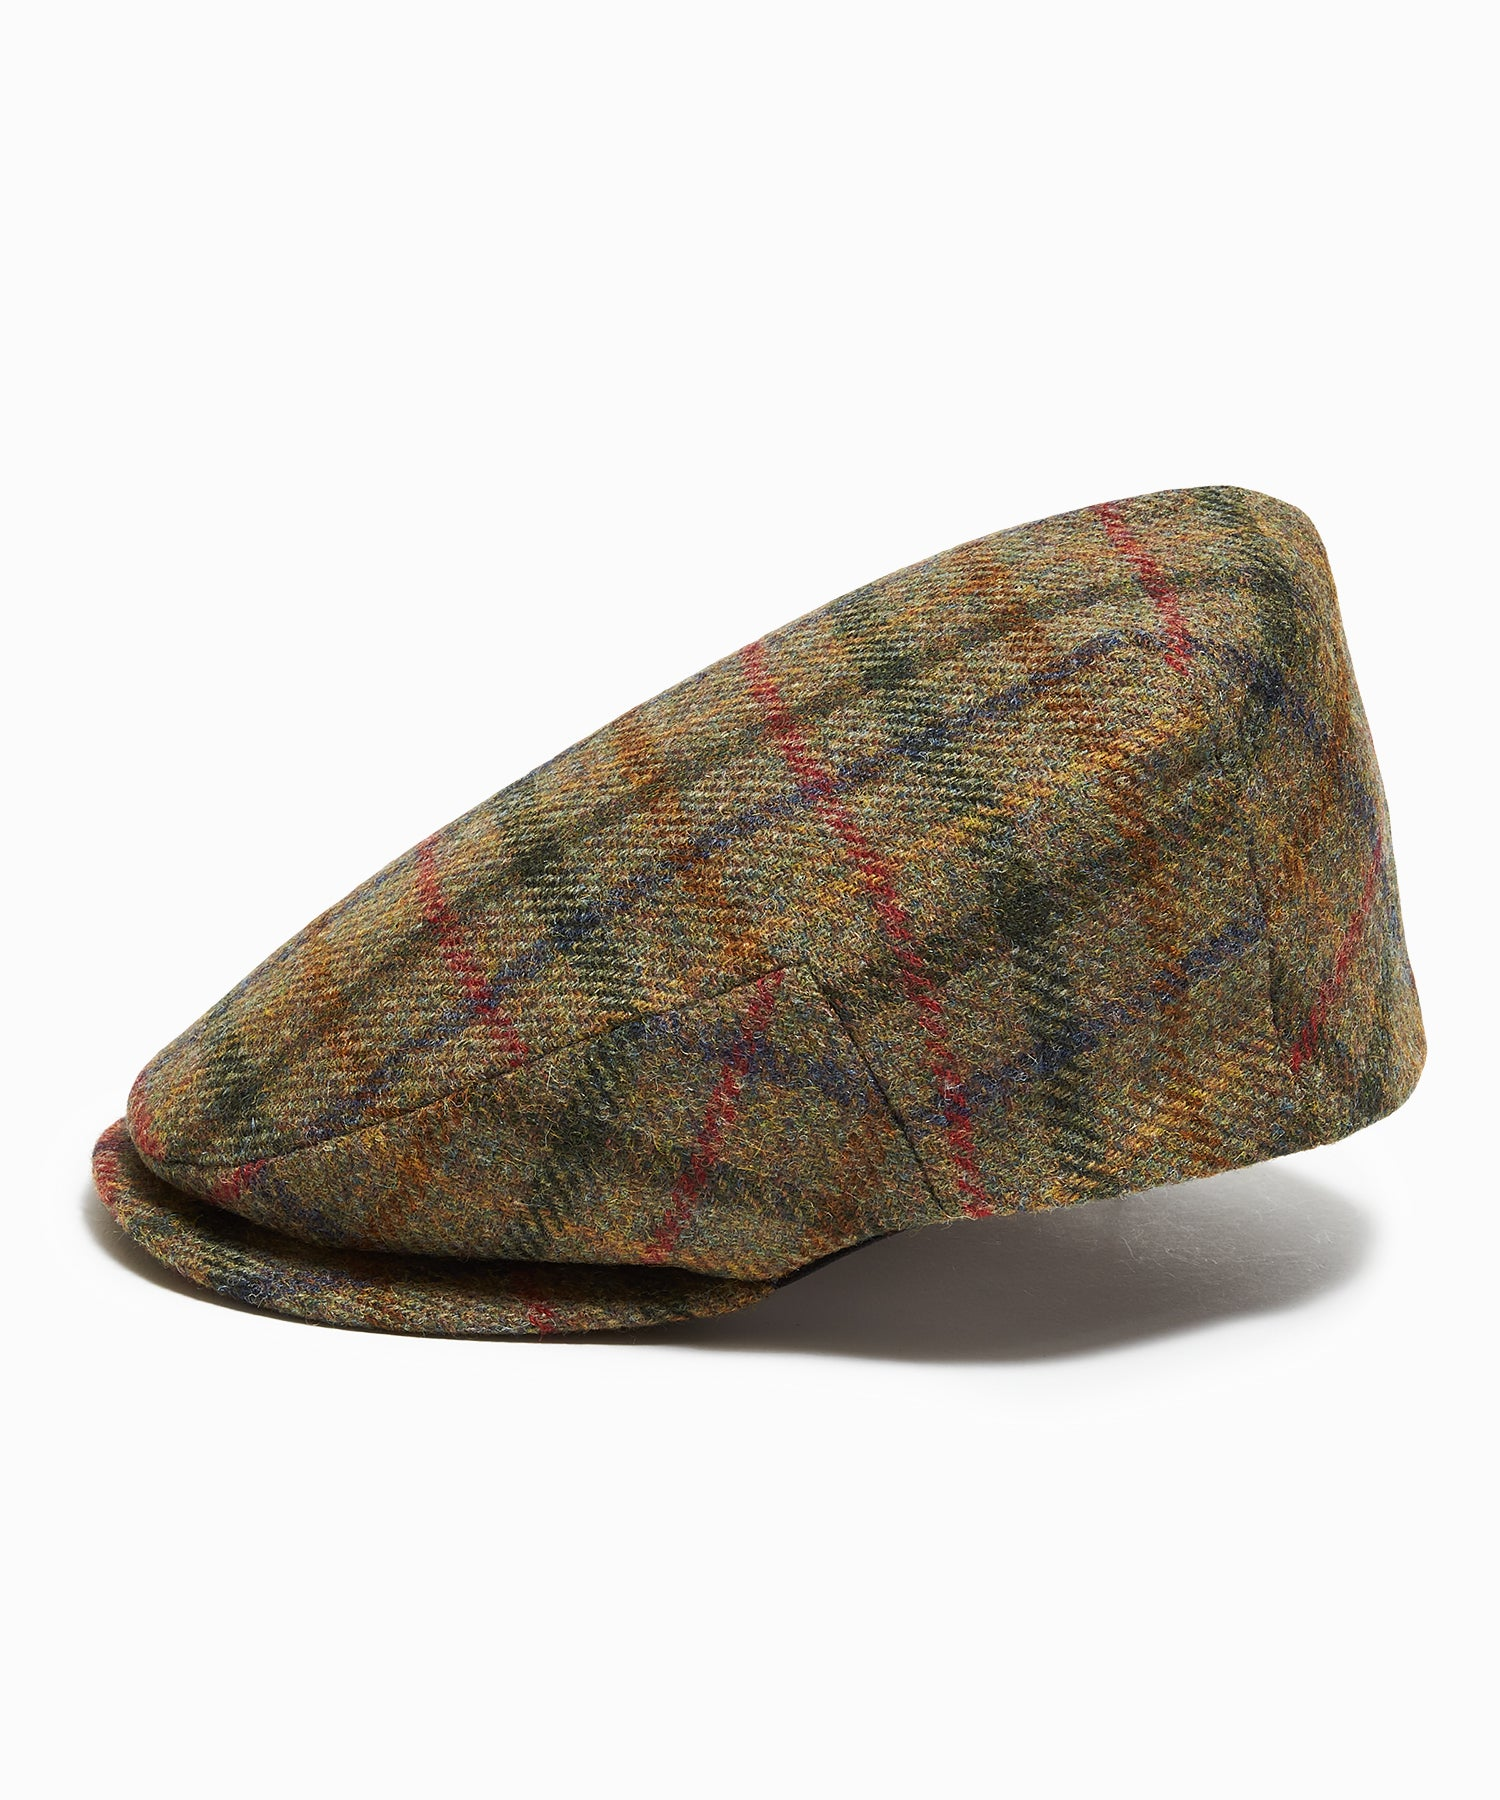 Lock & Co Flat Cap Moon Wool Brown Multi Pane